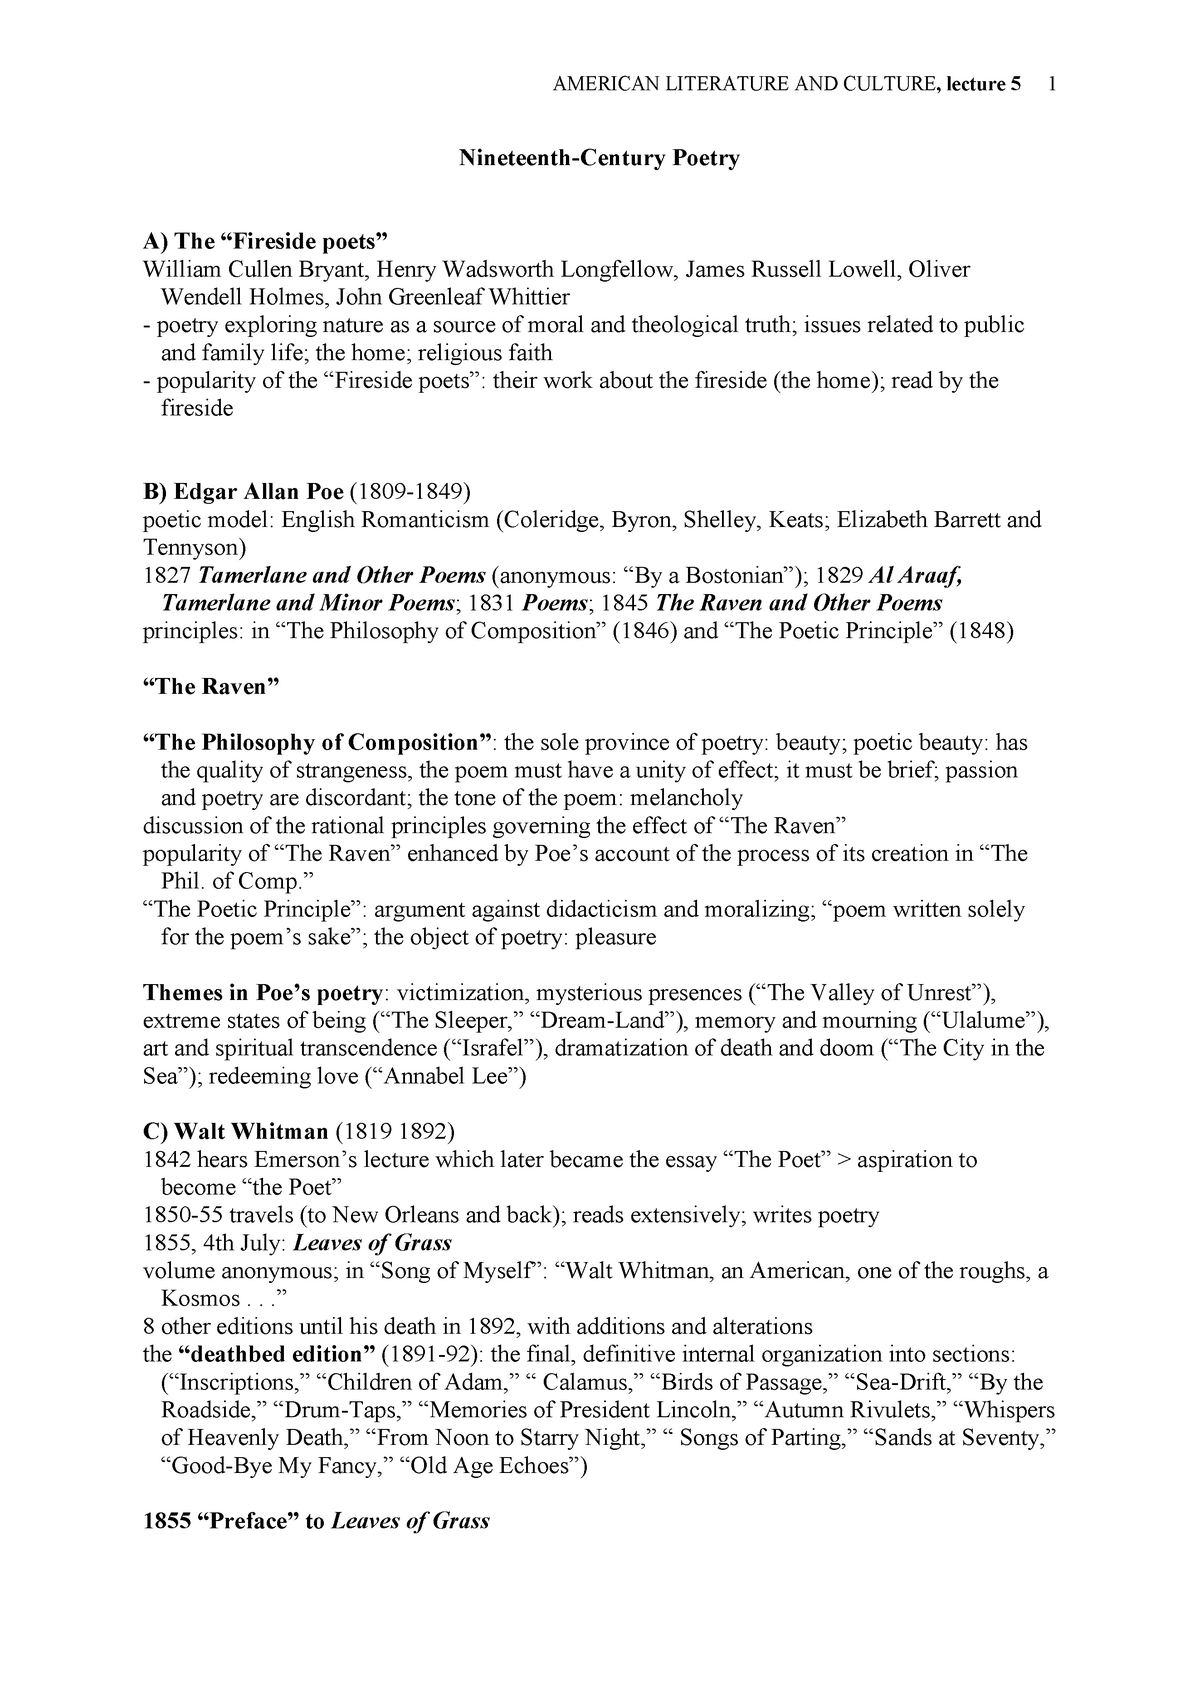 5 Nineteenth Poetry - Lecture notes 5 - ABNB090101 - PTE